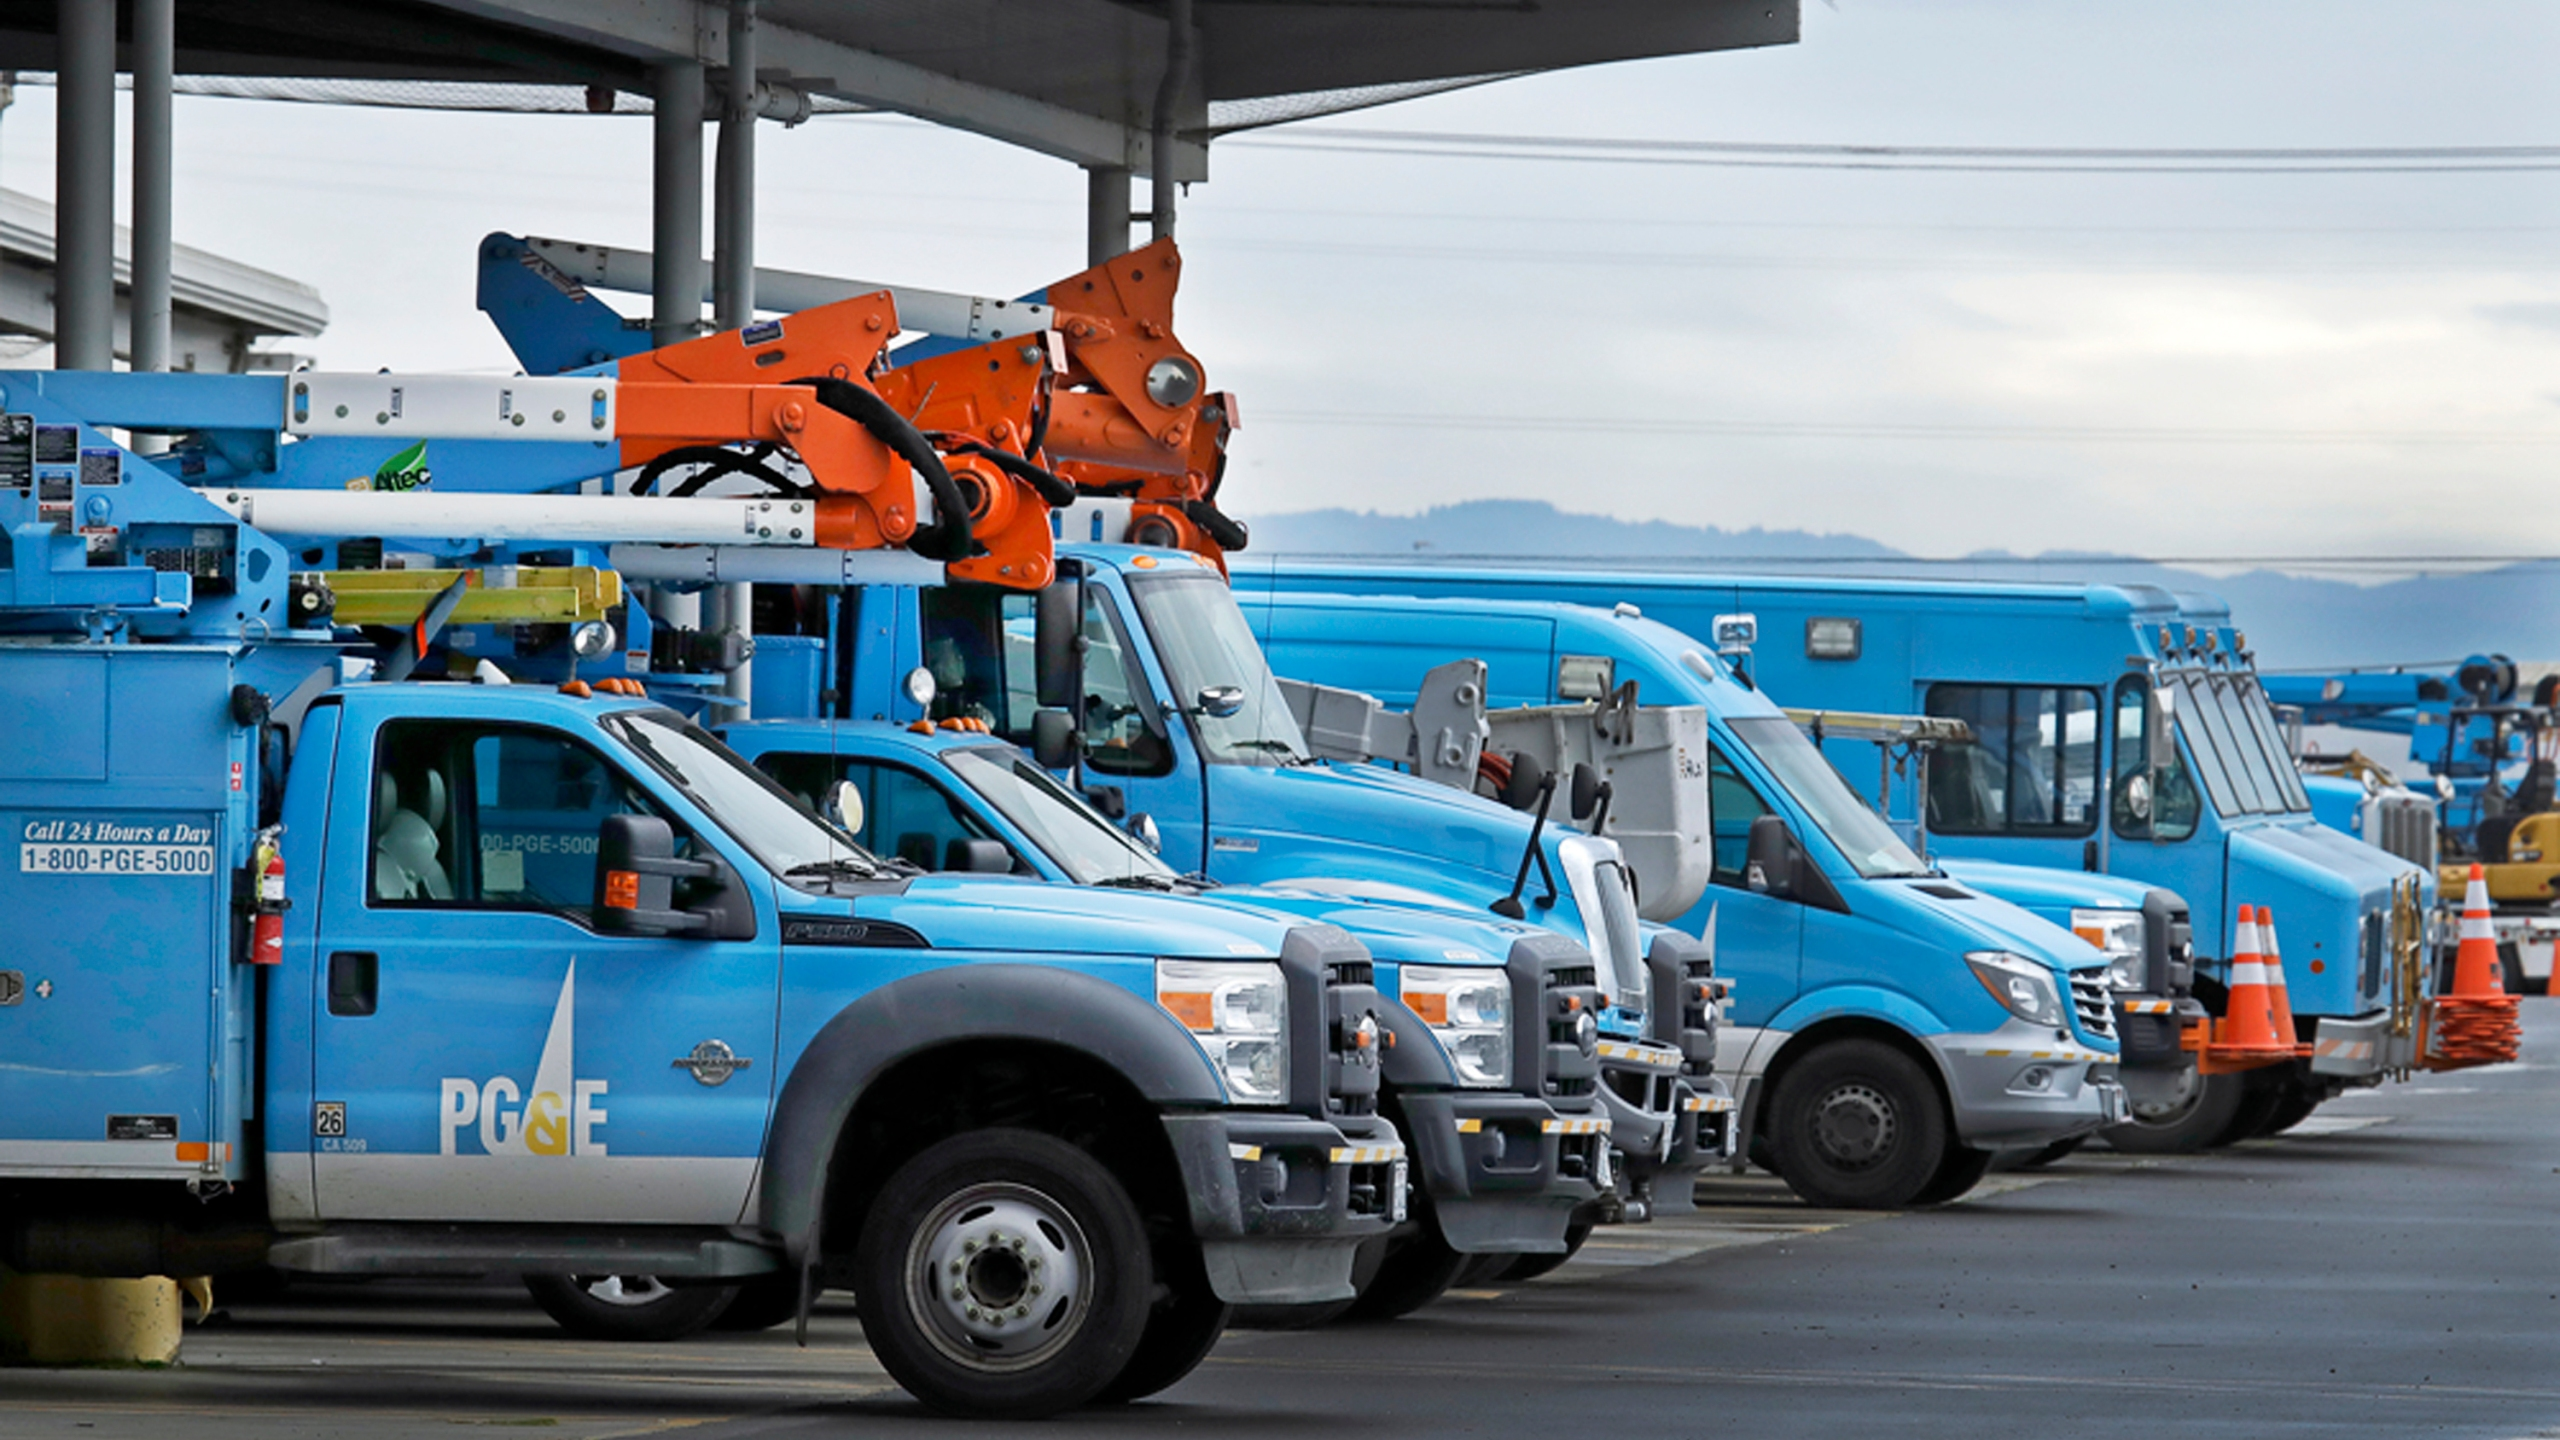 This Jan. 14, 2019, file photo shows Pacific Gas & Electric vehicles parked at the PG&E Oakland Service Center in Oakland, Calif. (AP Photo/Ben Margot, File)